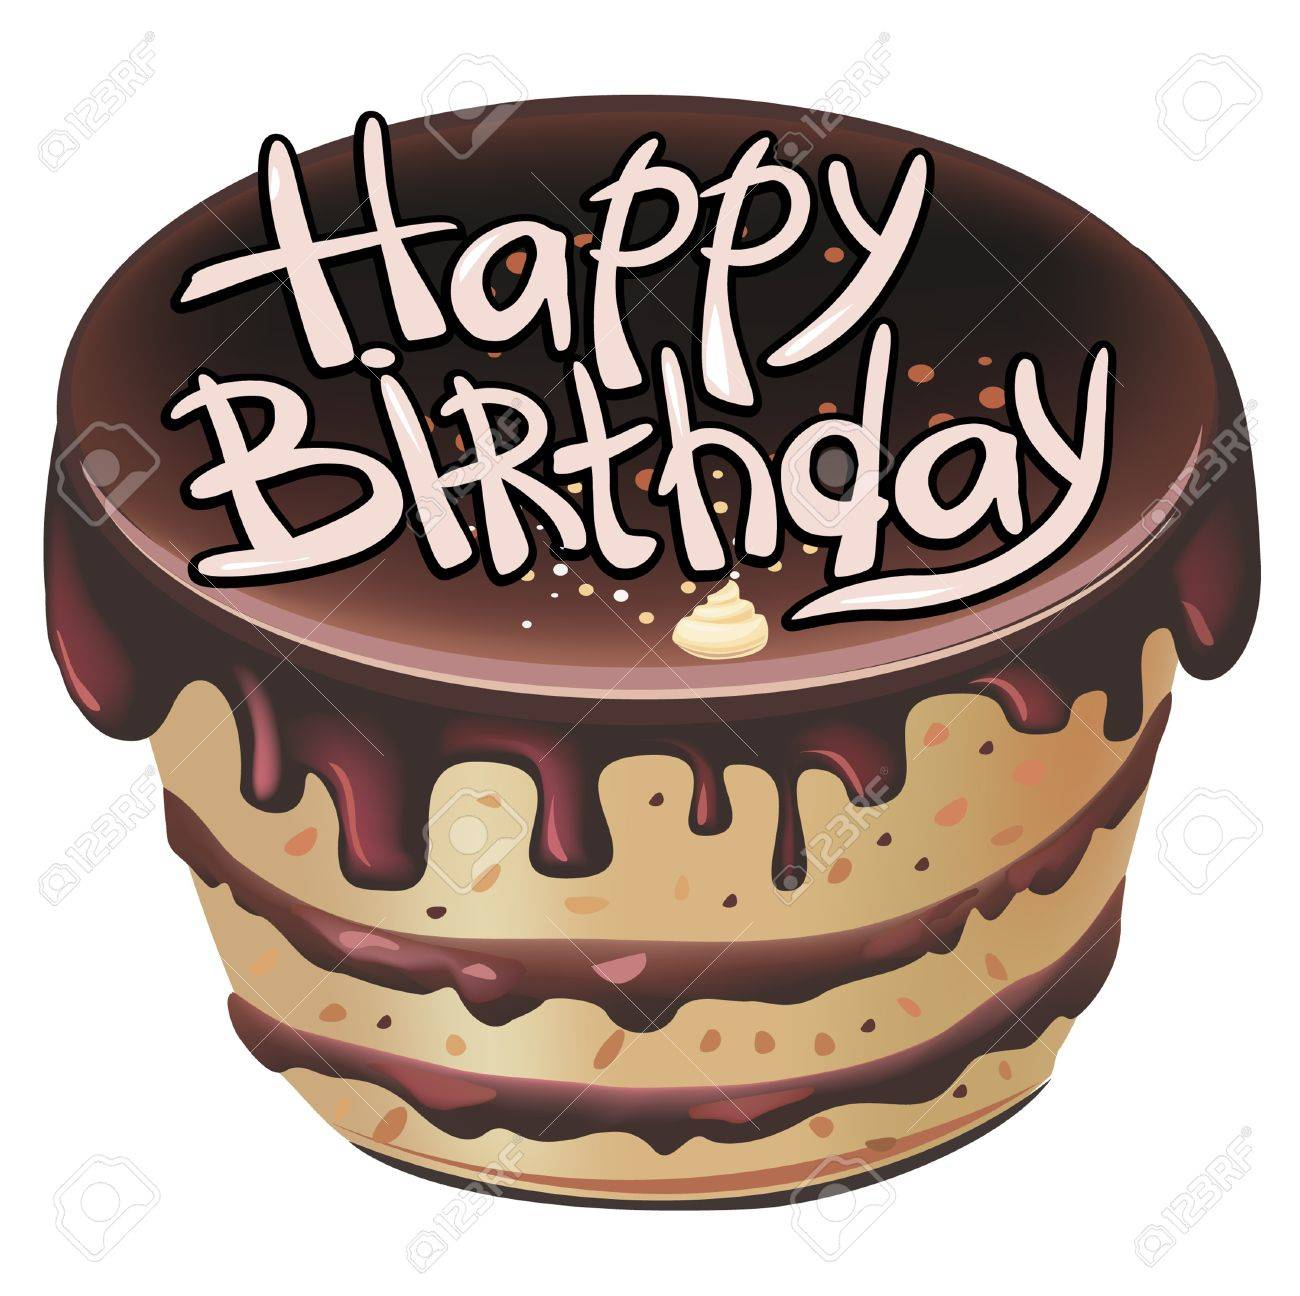 Pleasing Chocolate Birthday Cake Royalty Free Cliparts Vectors And Stock Personalised Birthday Cards Bromeletsinfo